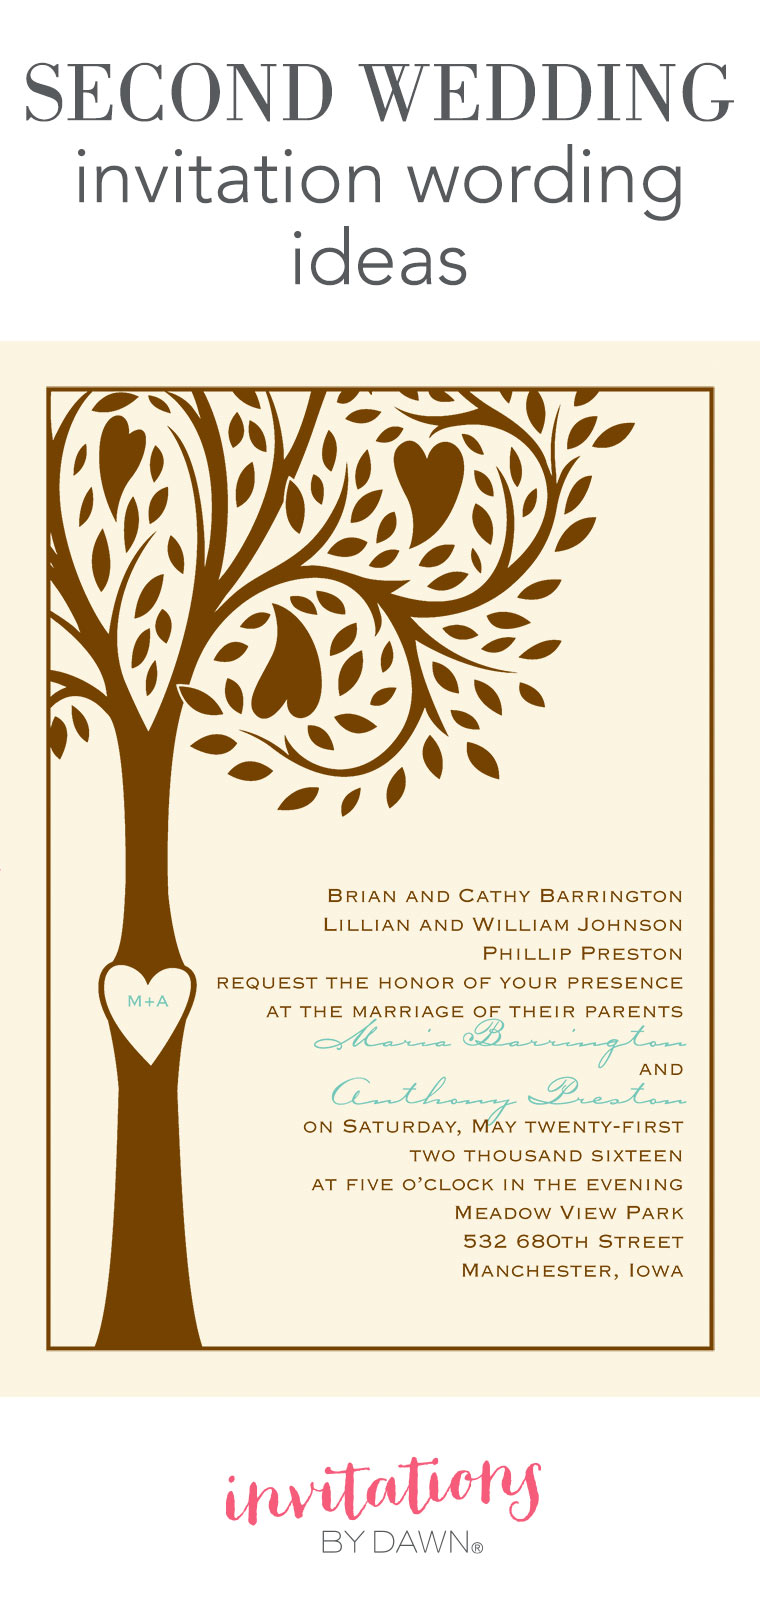 Second wedding invitation wording invitations by dawn second wedding invitation wording stopboris